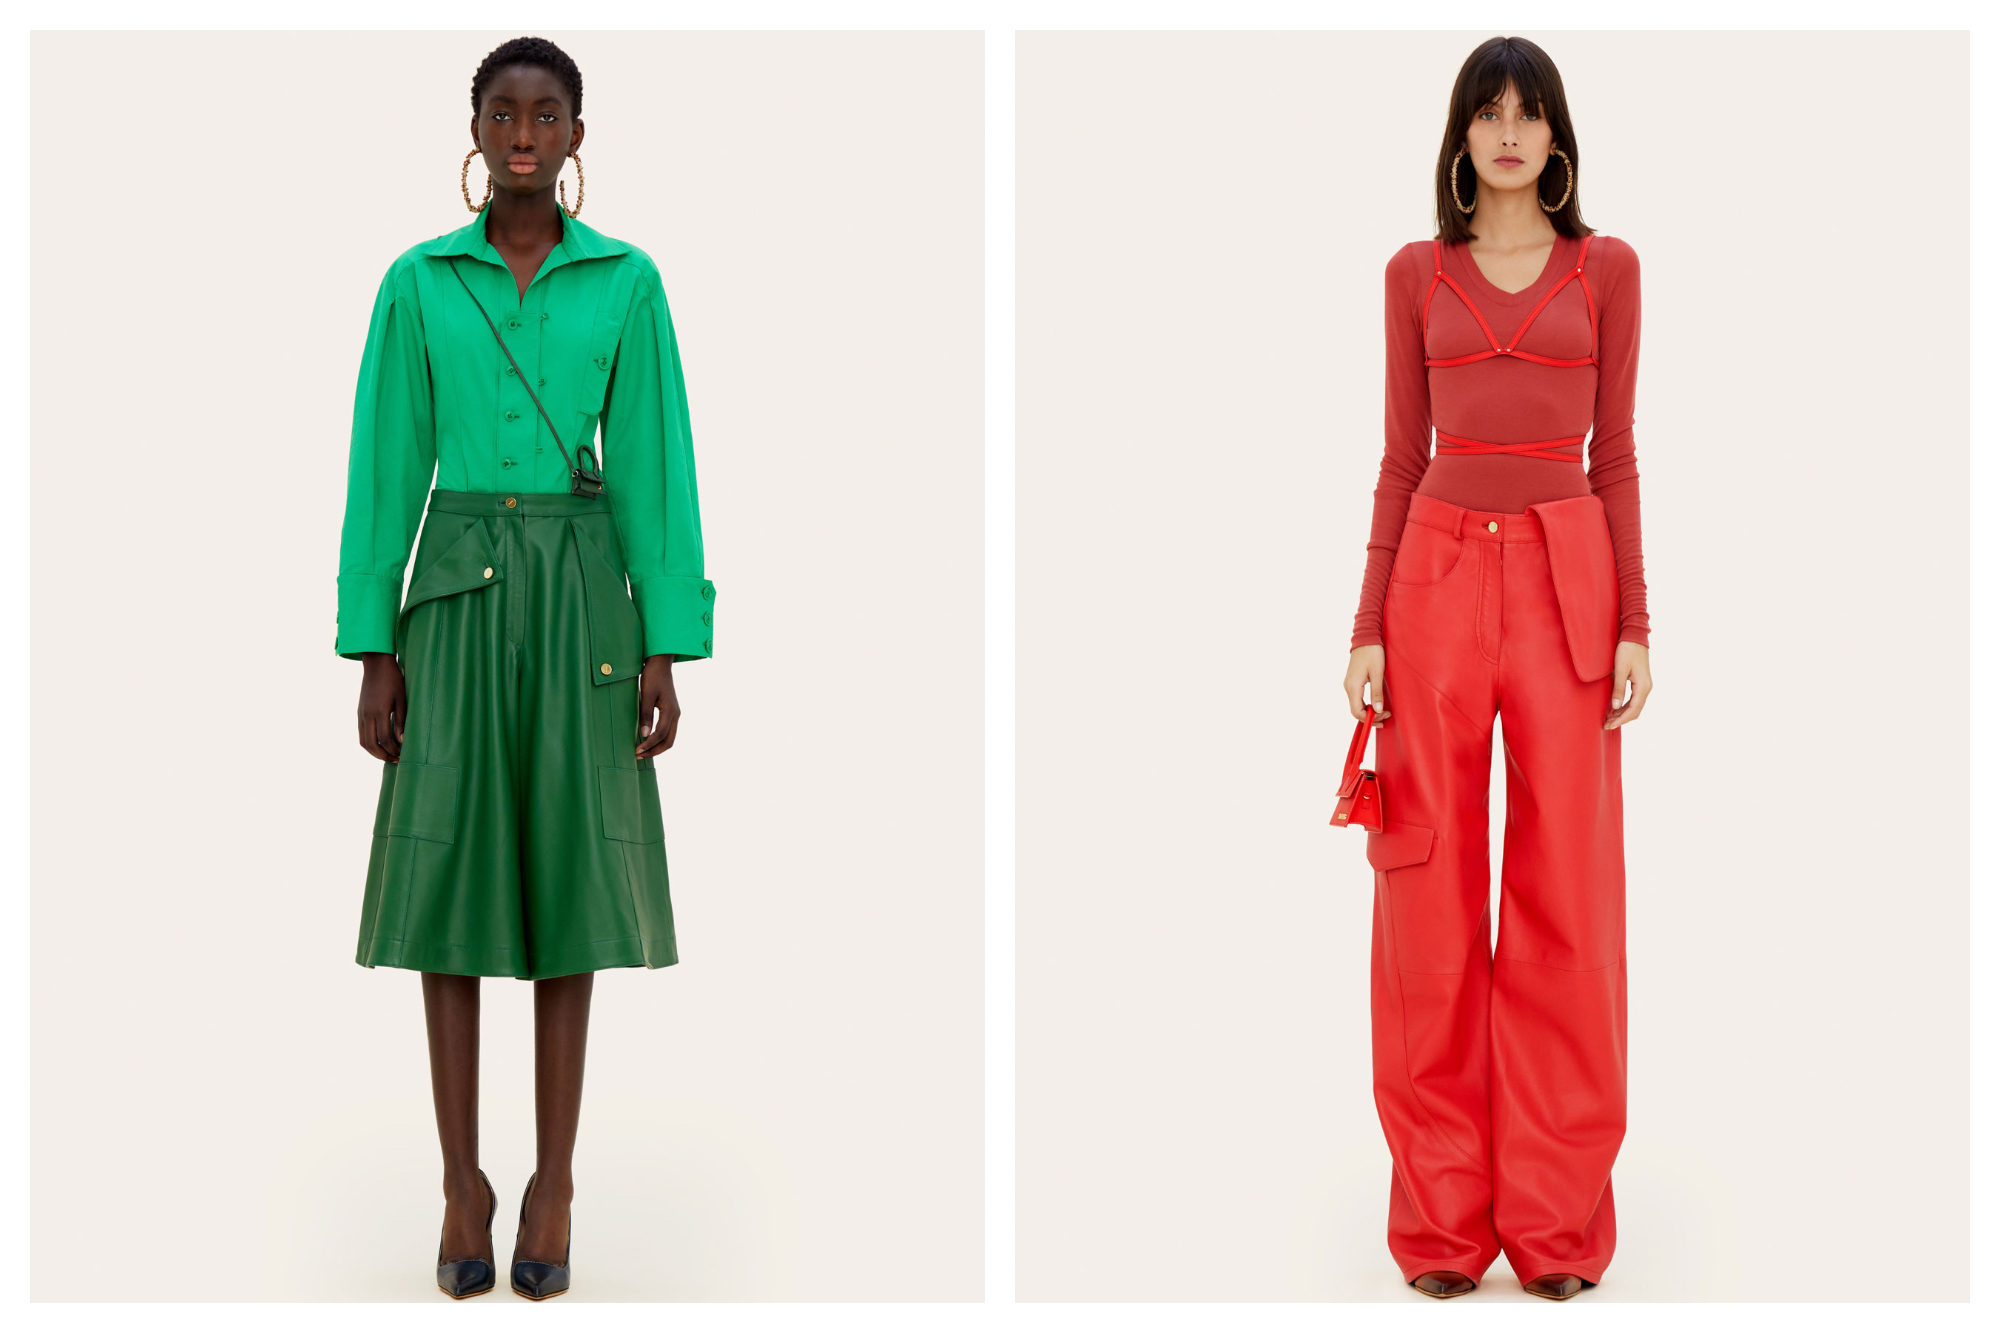 A black woman wearing a bright green blouse and skirt (left). A white woman wearing a bright red top and trousers (right), both by Jacquemus.